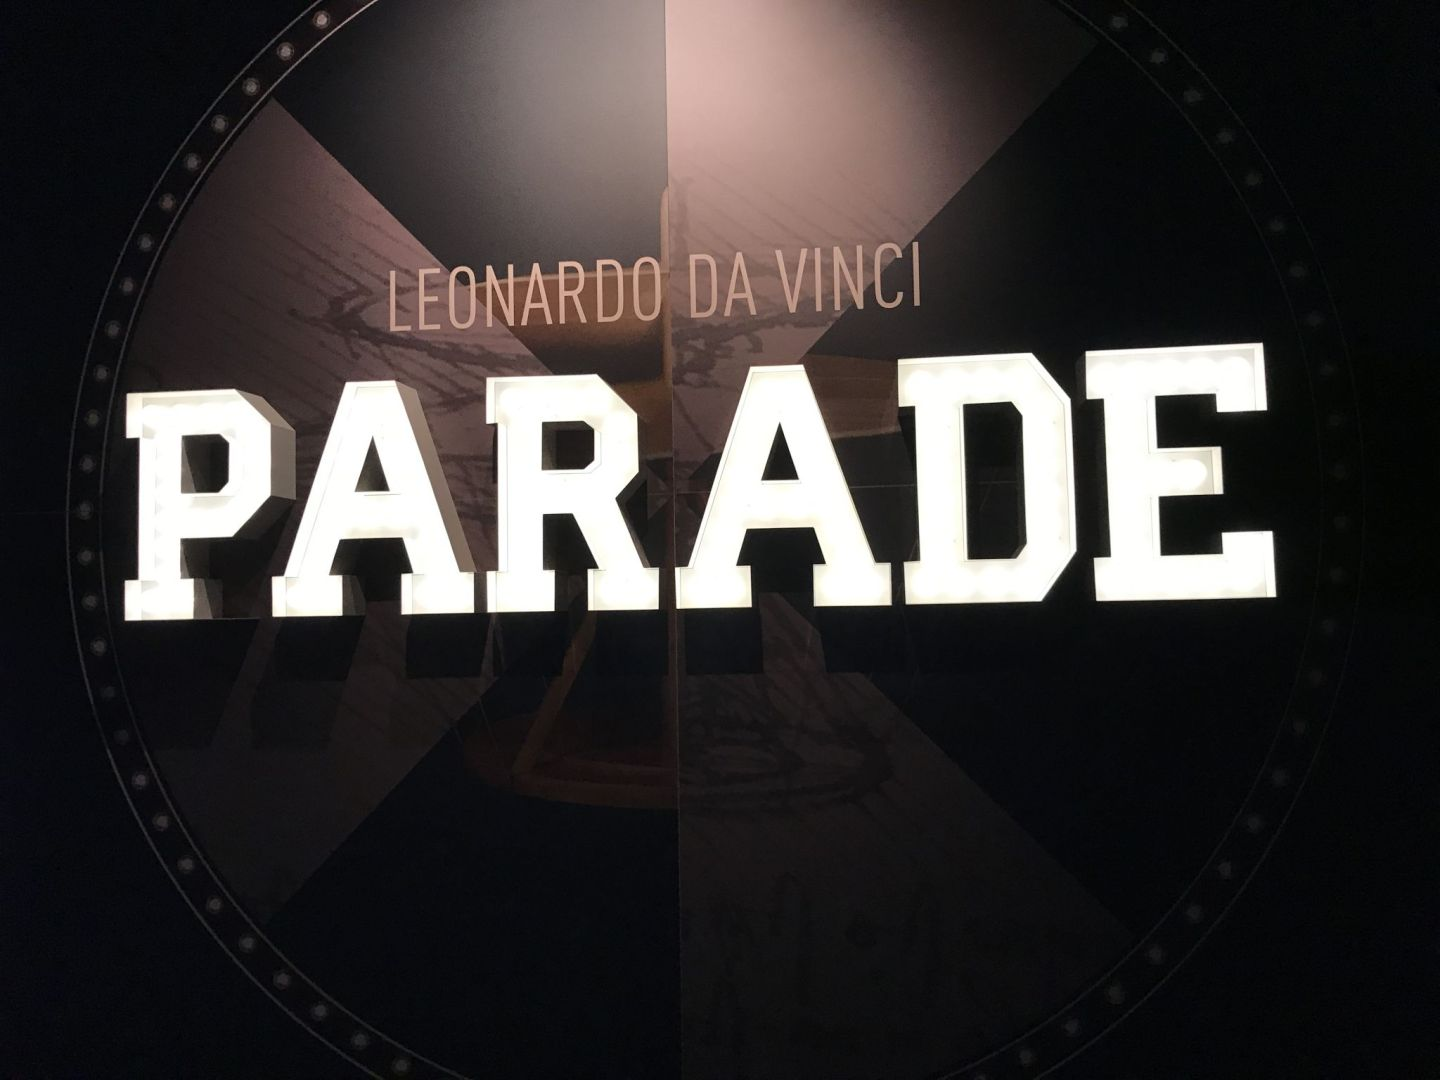 Leonardo da Vinci parade, exhibition at the Museum of Science and Industry, Milan